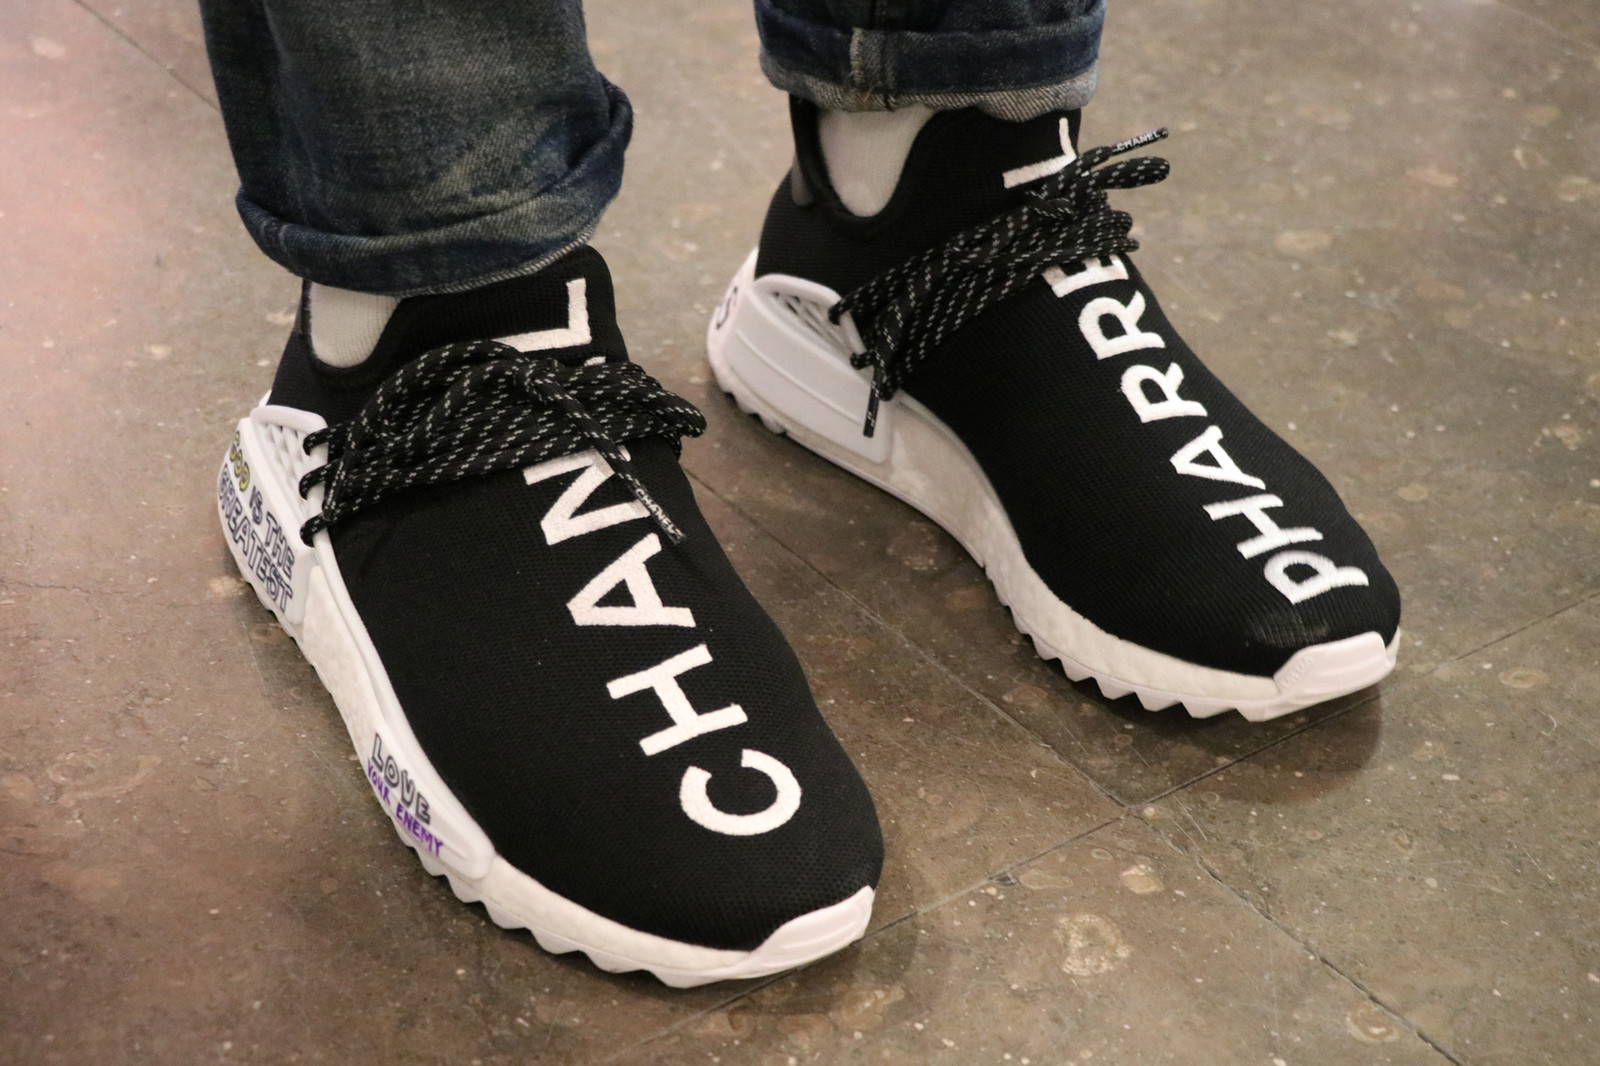 526b979ca Pharrell Williams adidas Originals Hu NMD Chanel colette Paris Footwear  Sneaker